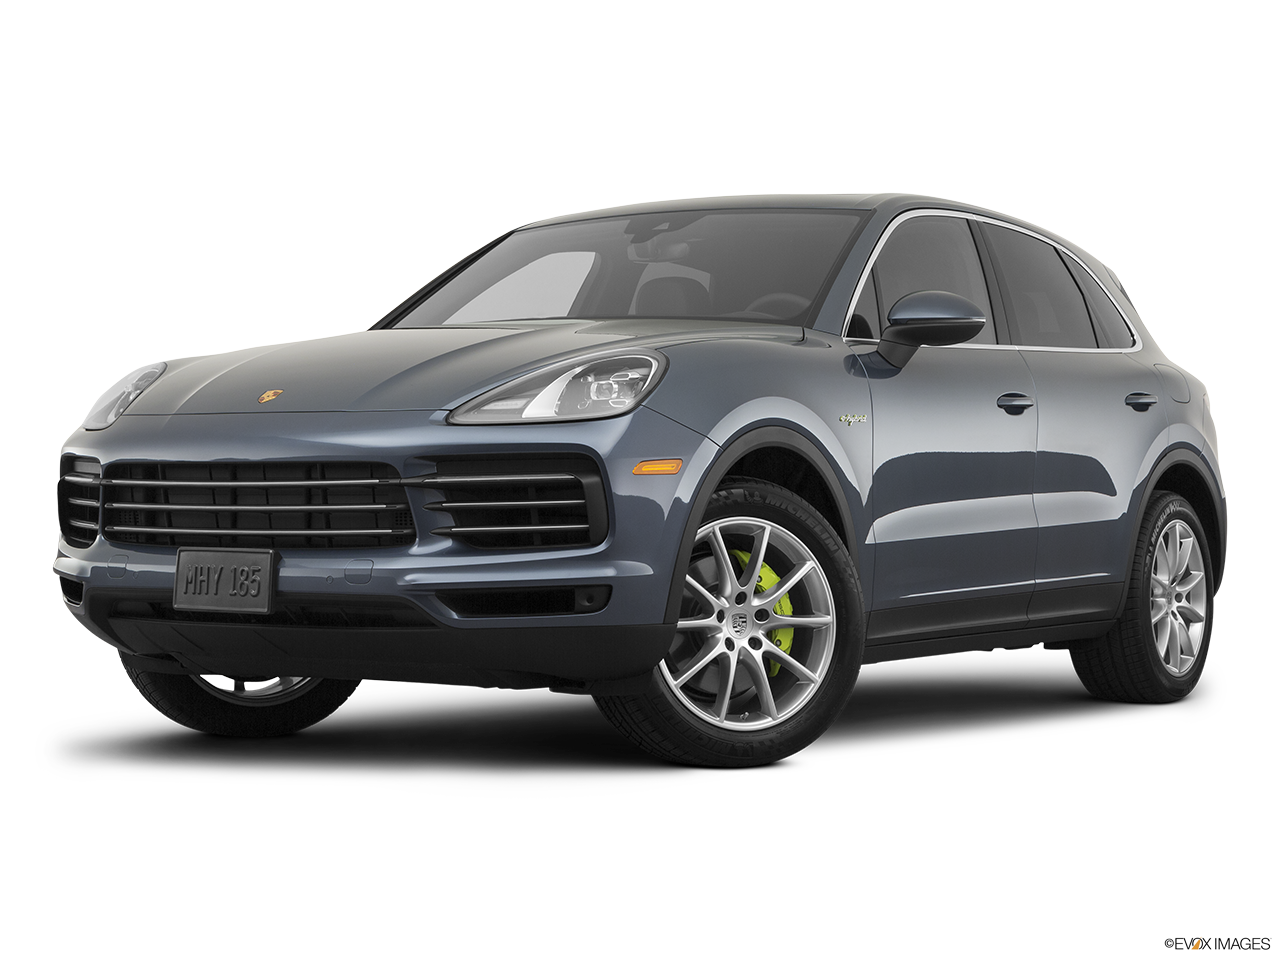 Three quart view of the Porsche Cayenne S E Hybrid